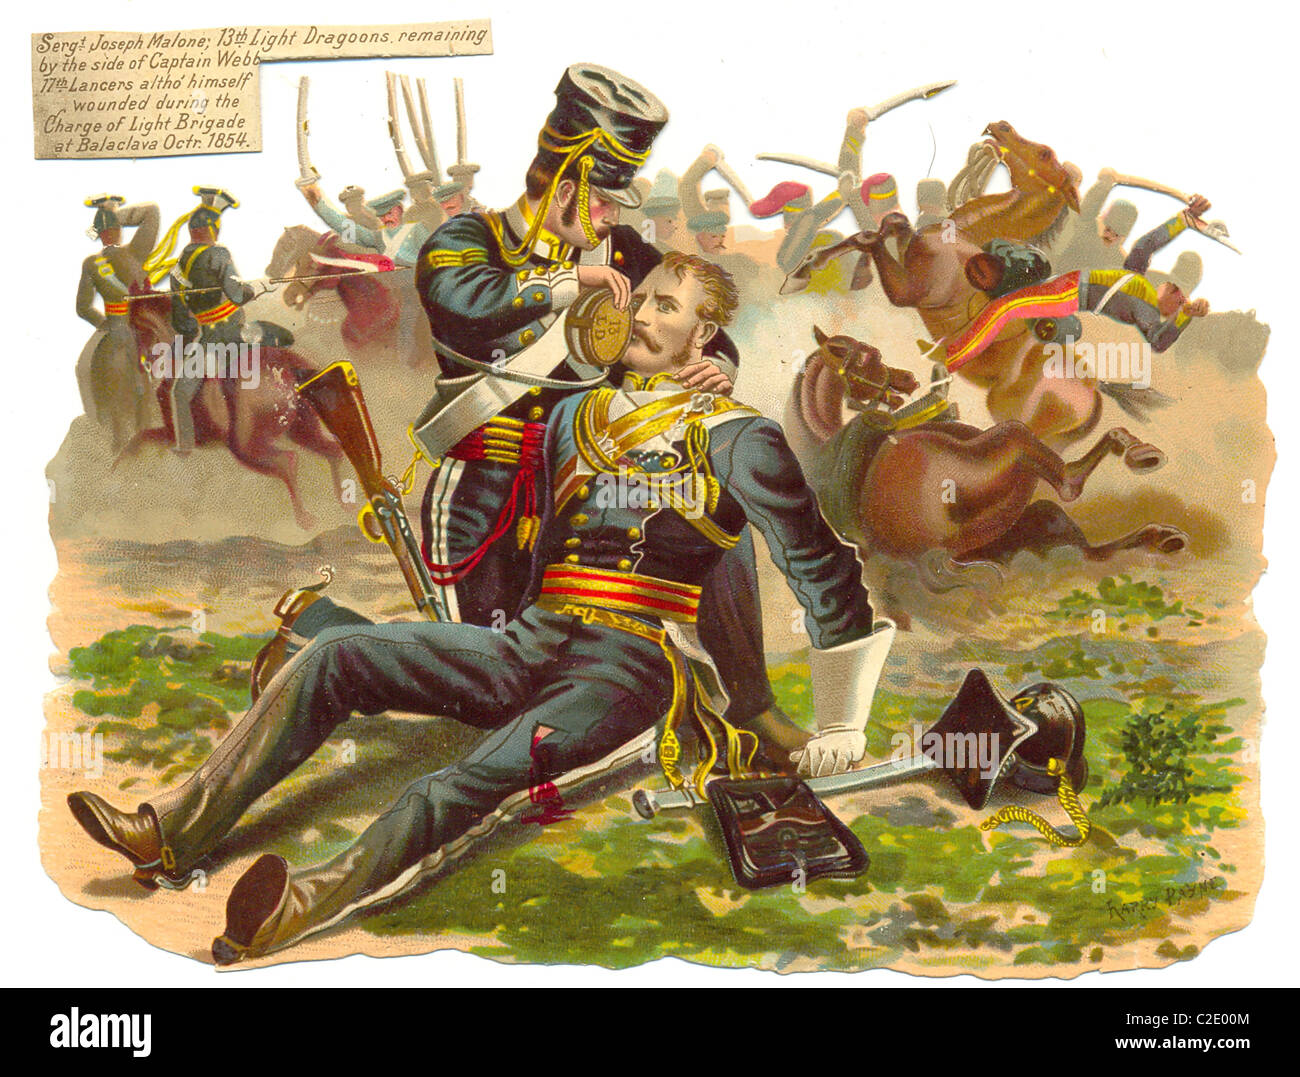 die cut scrap showing Sergeant Joseph Malone at the Charge of the Light Brigade, Balaclava - Stock Image